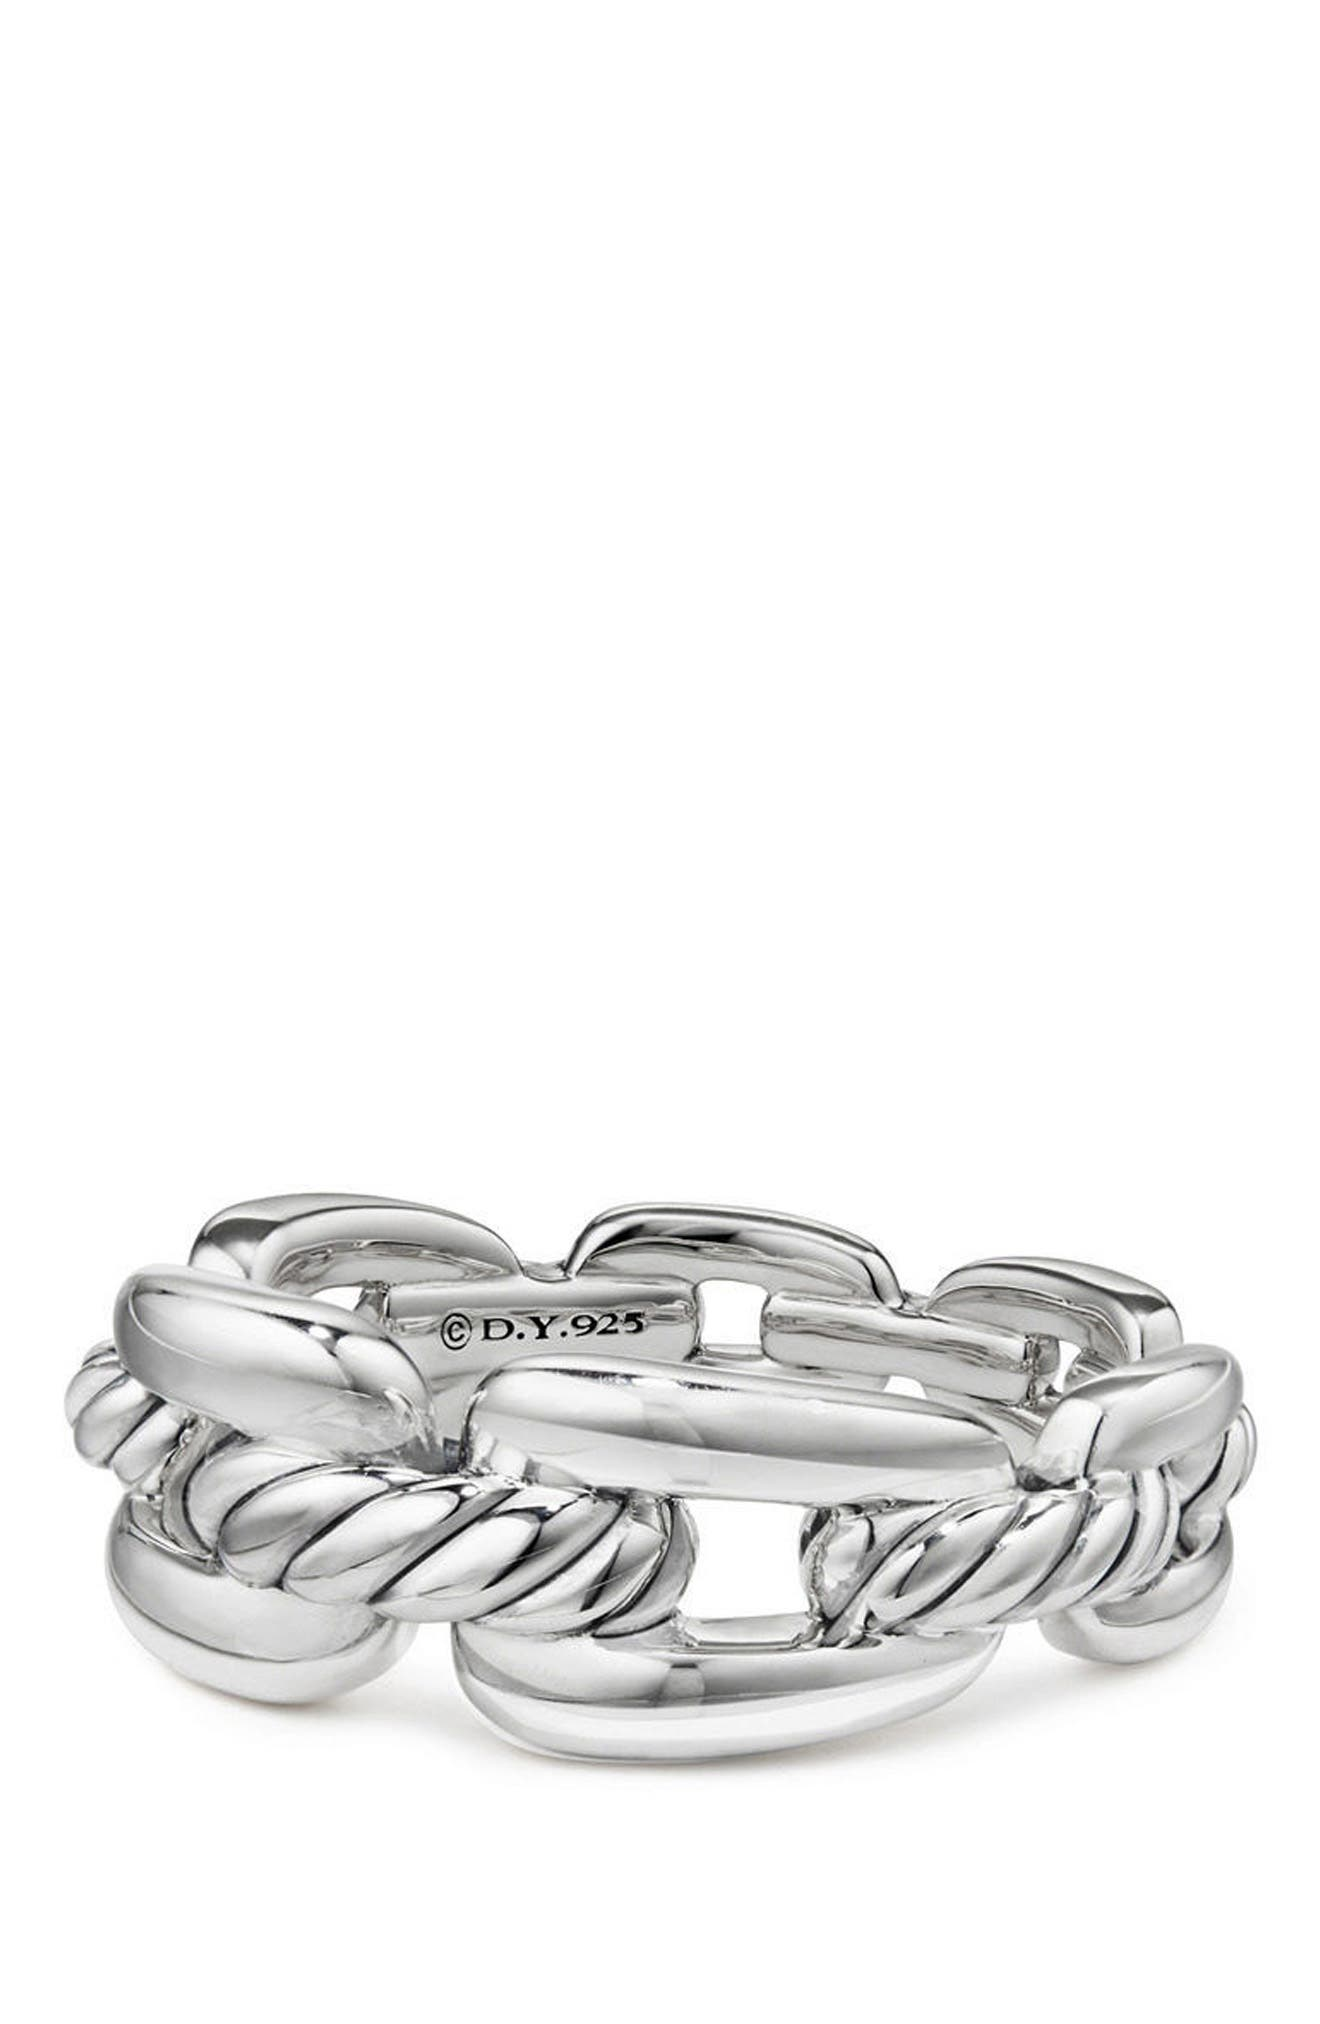 Wellesley Chain Link Ring with Diamonds,                             Main thumbnail 1, color,                             SILVER